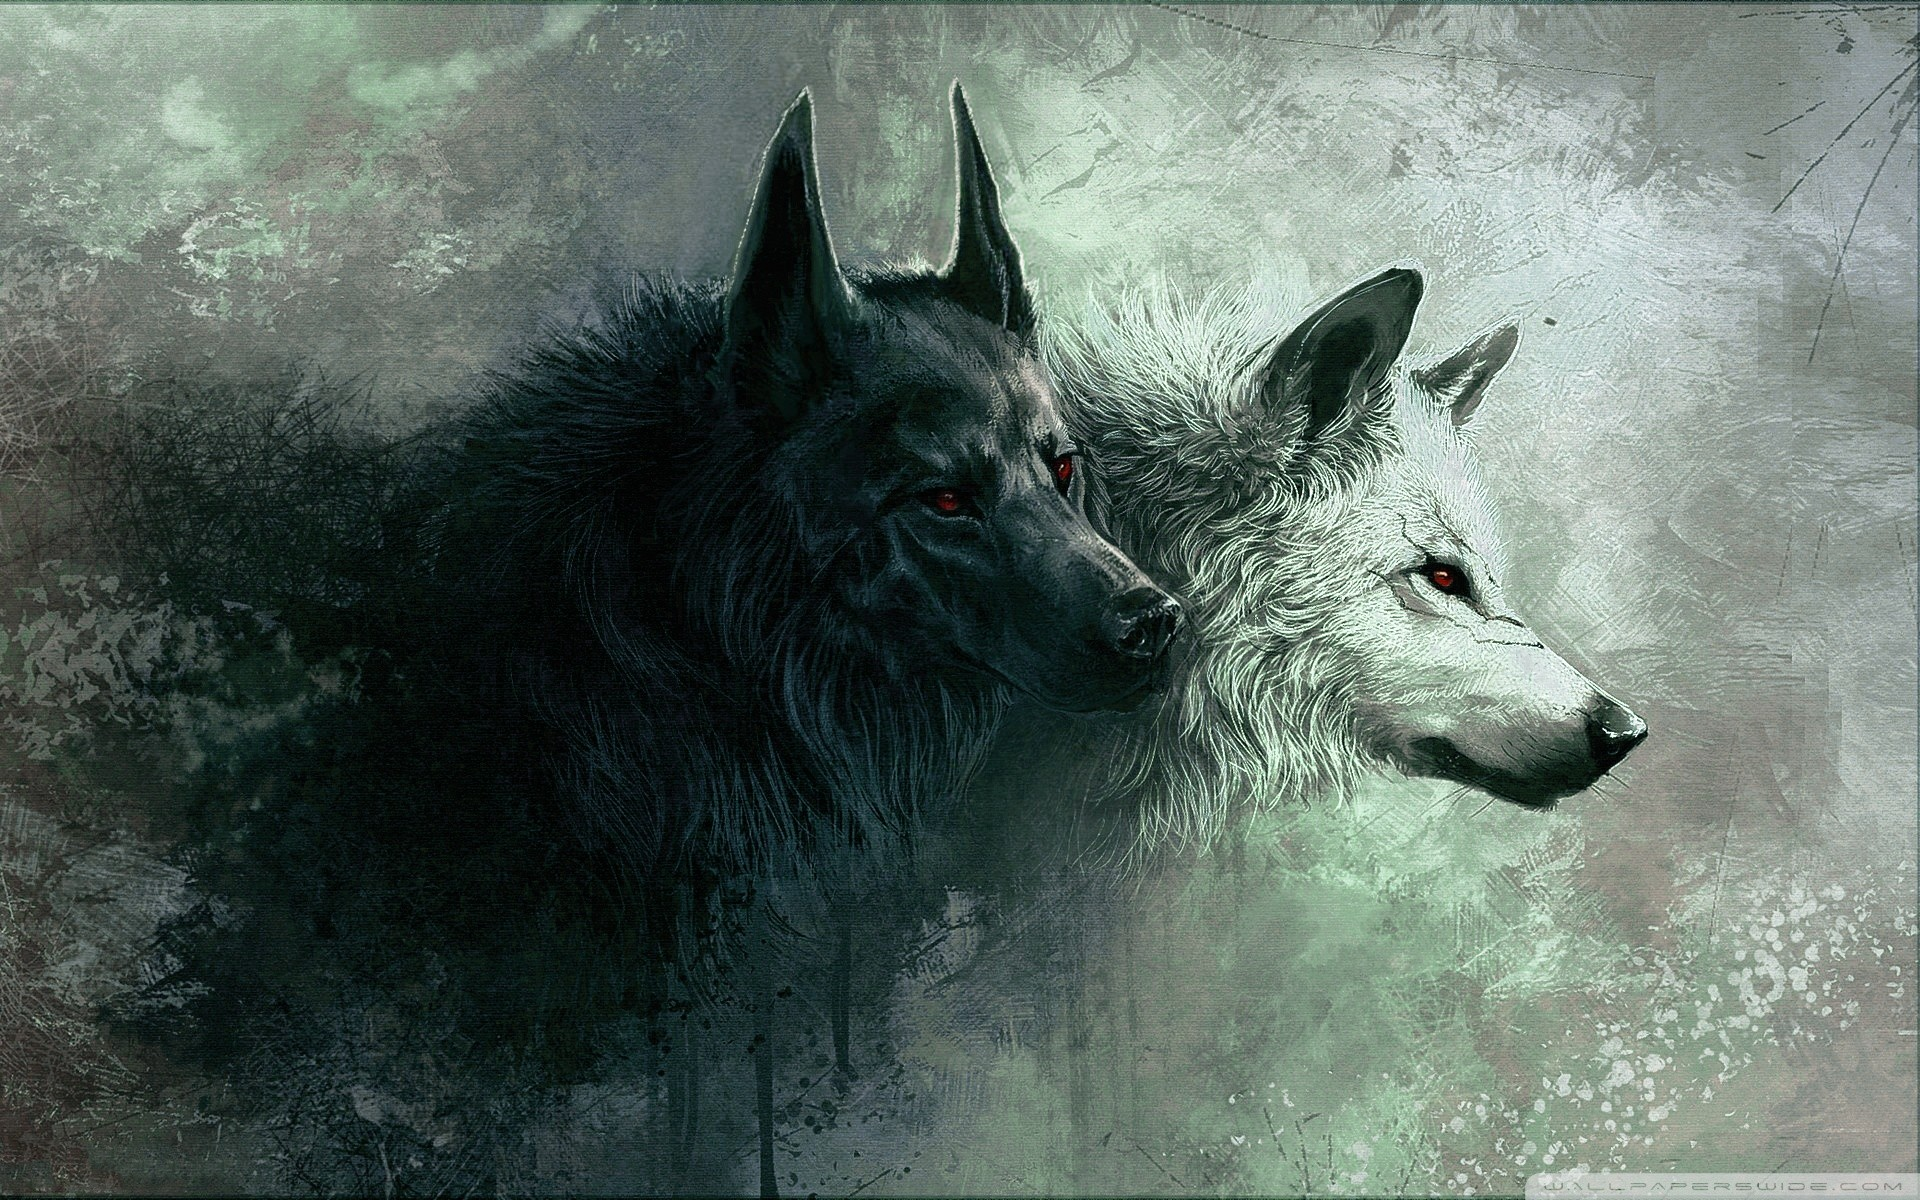 1920x1200 Wolf wallpapers Gallery| Beautiful and Interesting  Images,Vectors,Coloring,Cliparts |Free Hd wallpapers